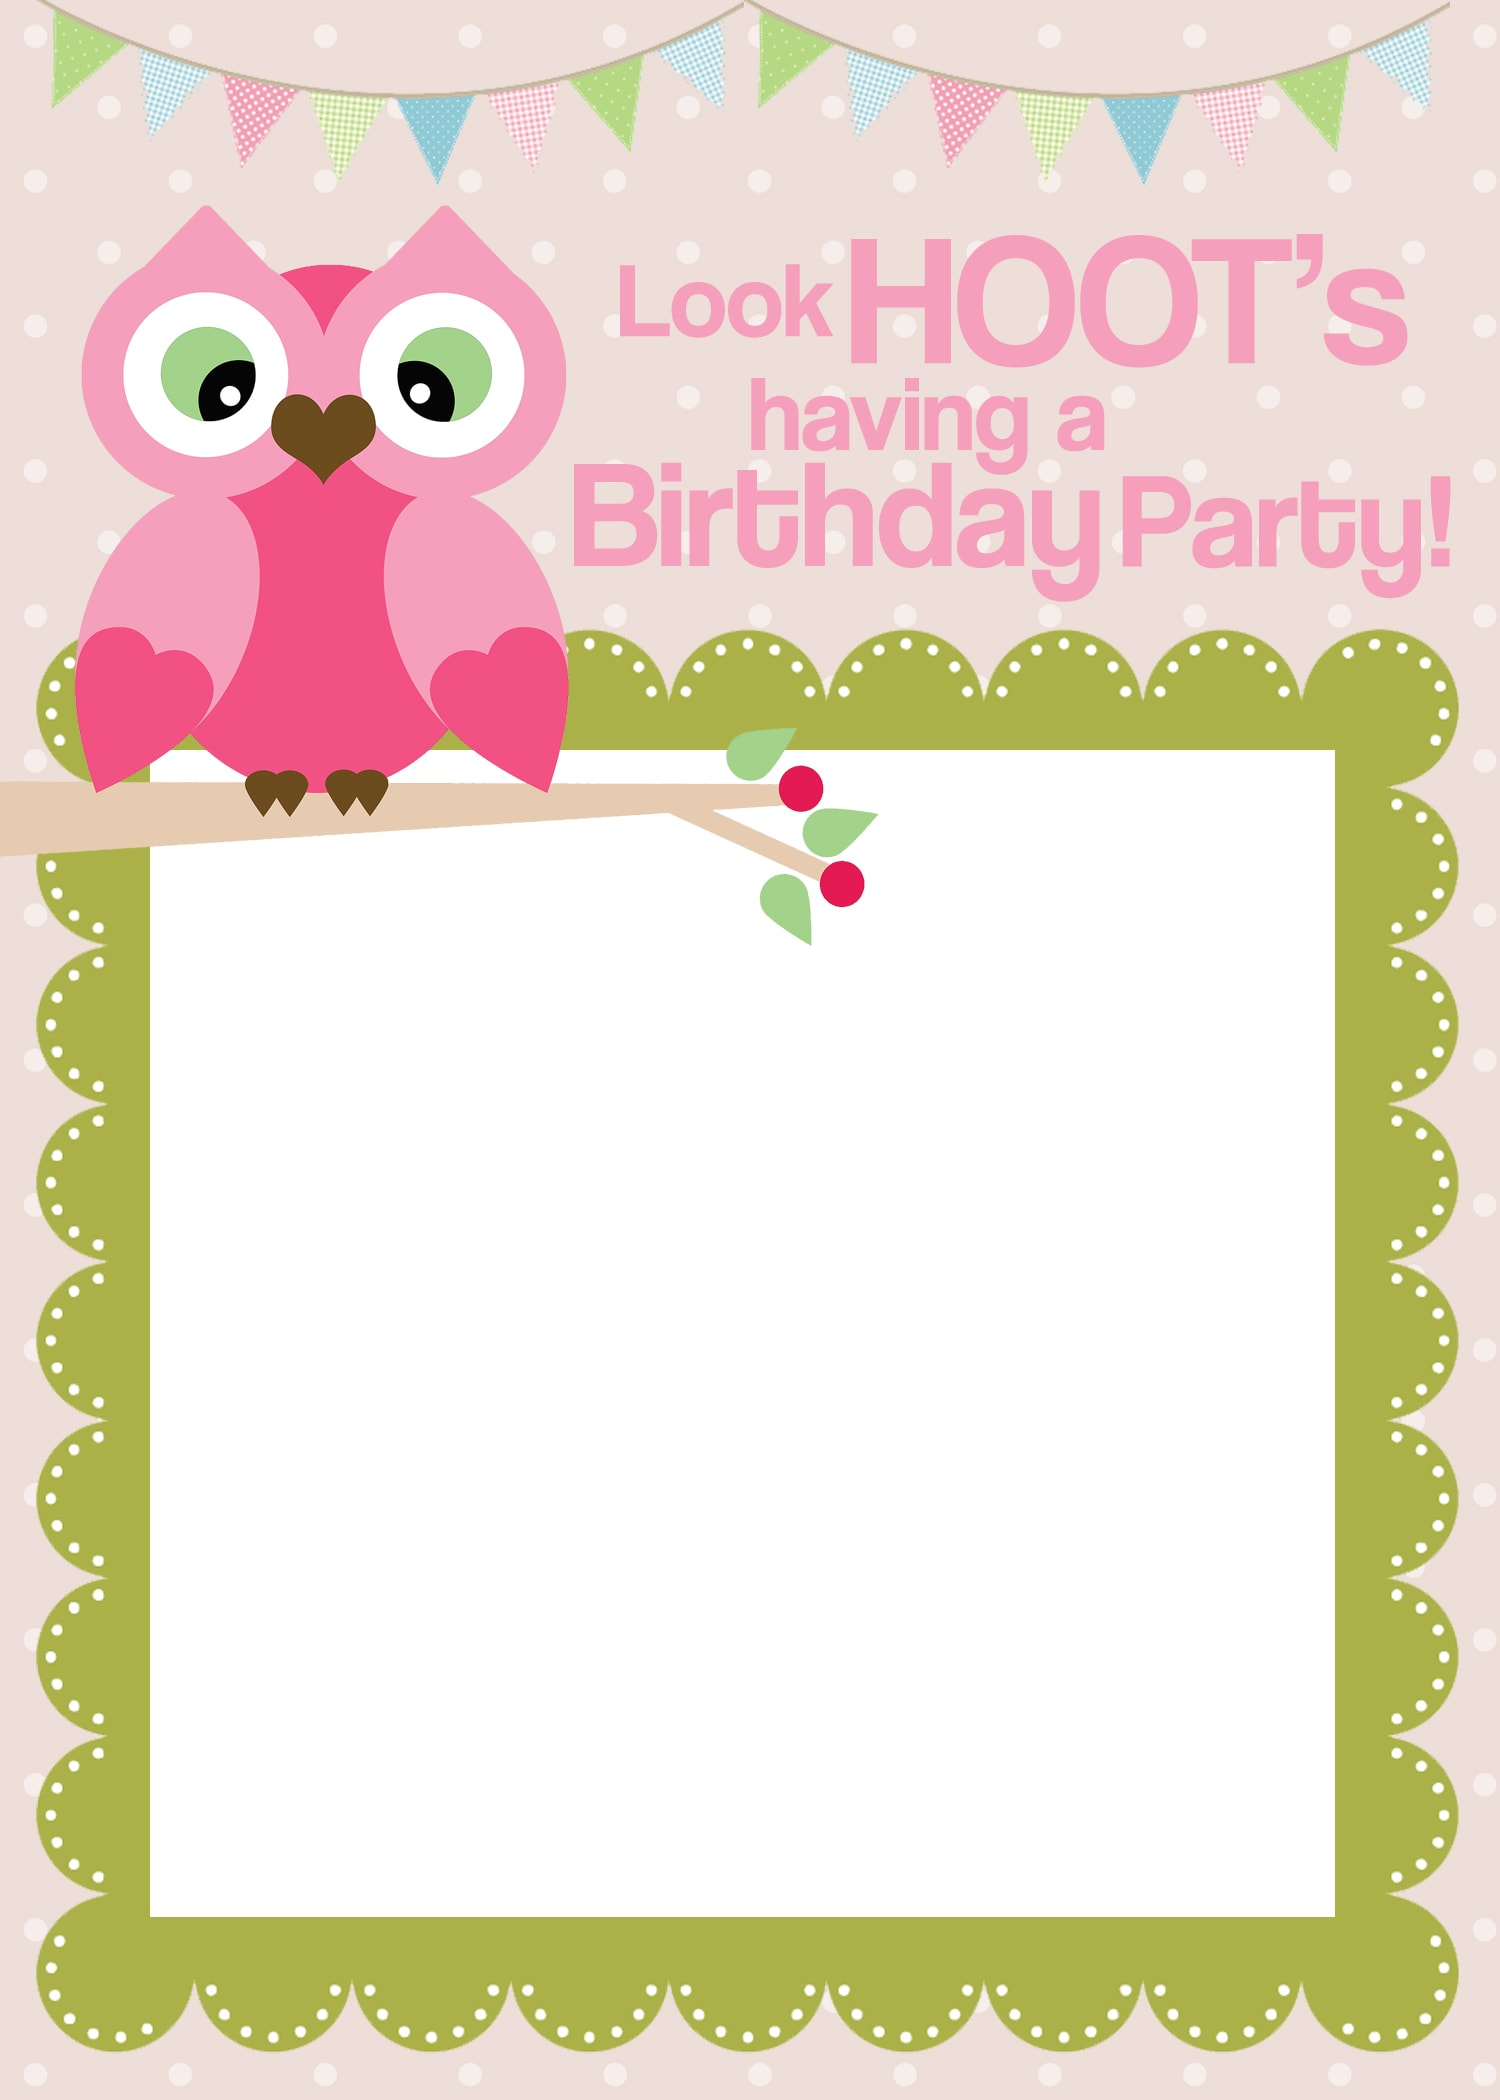 Butterfly Birthday Invites is awesome invitations design